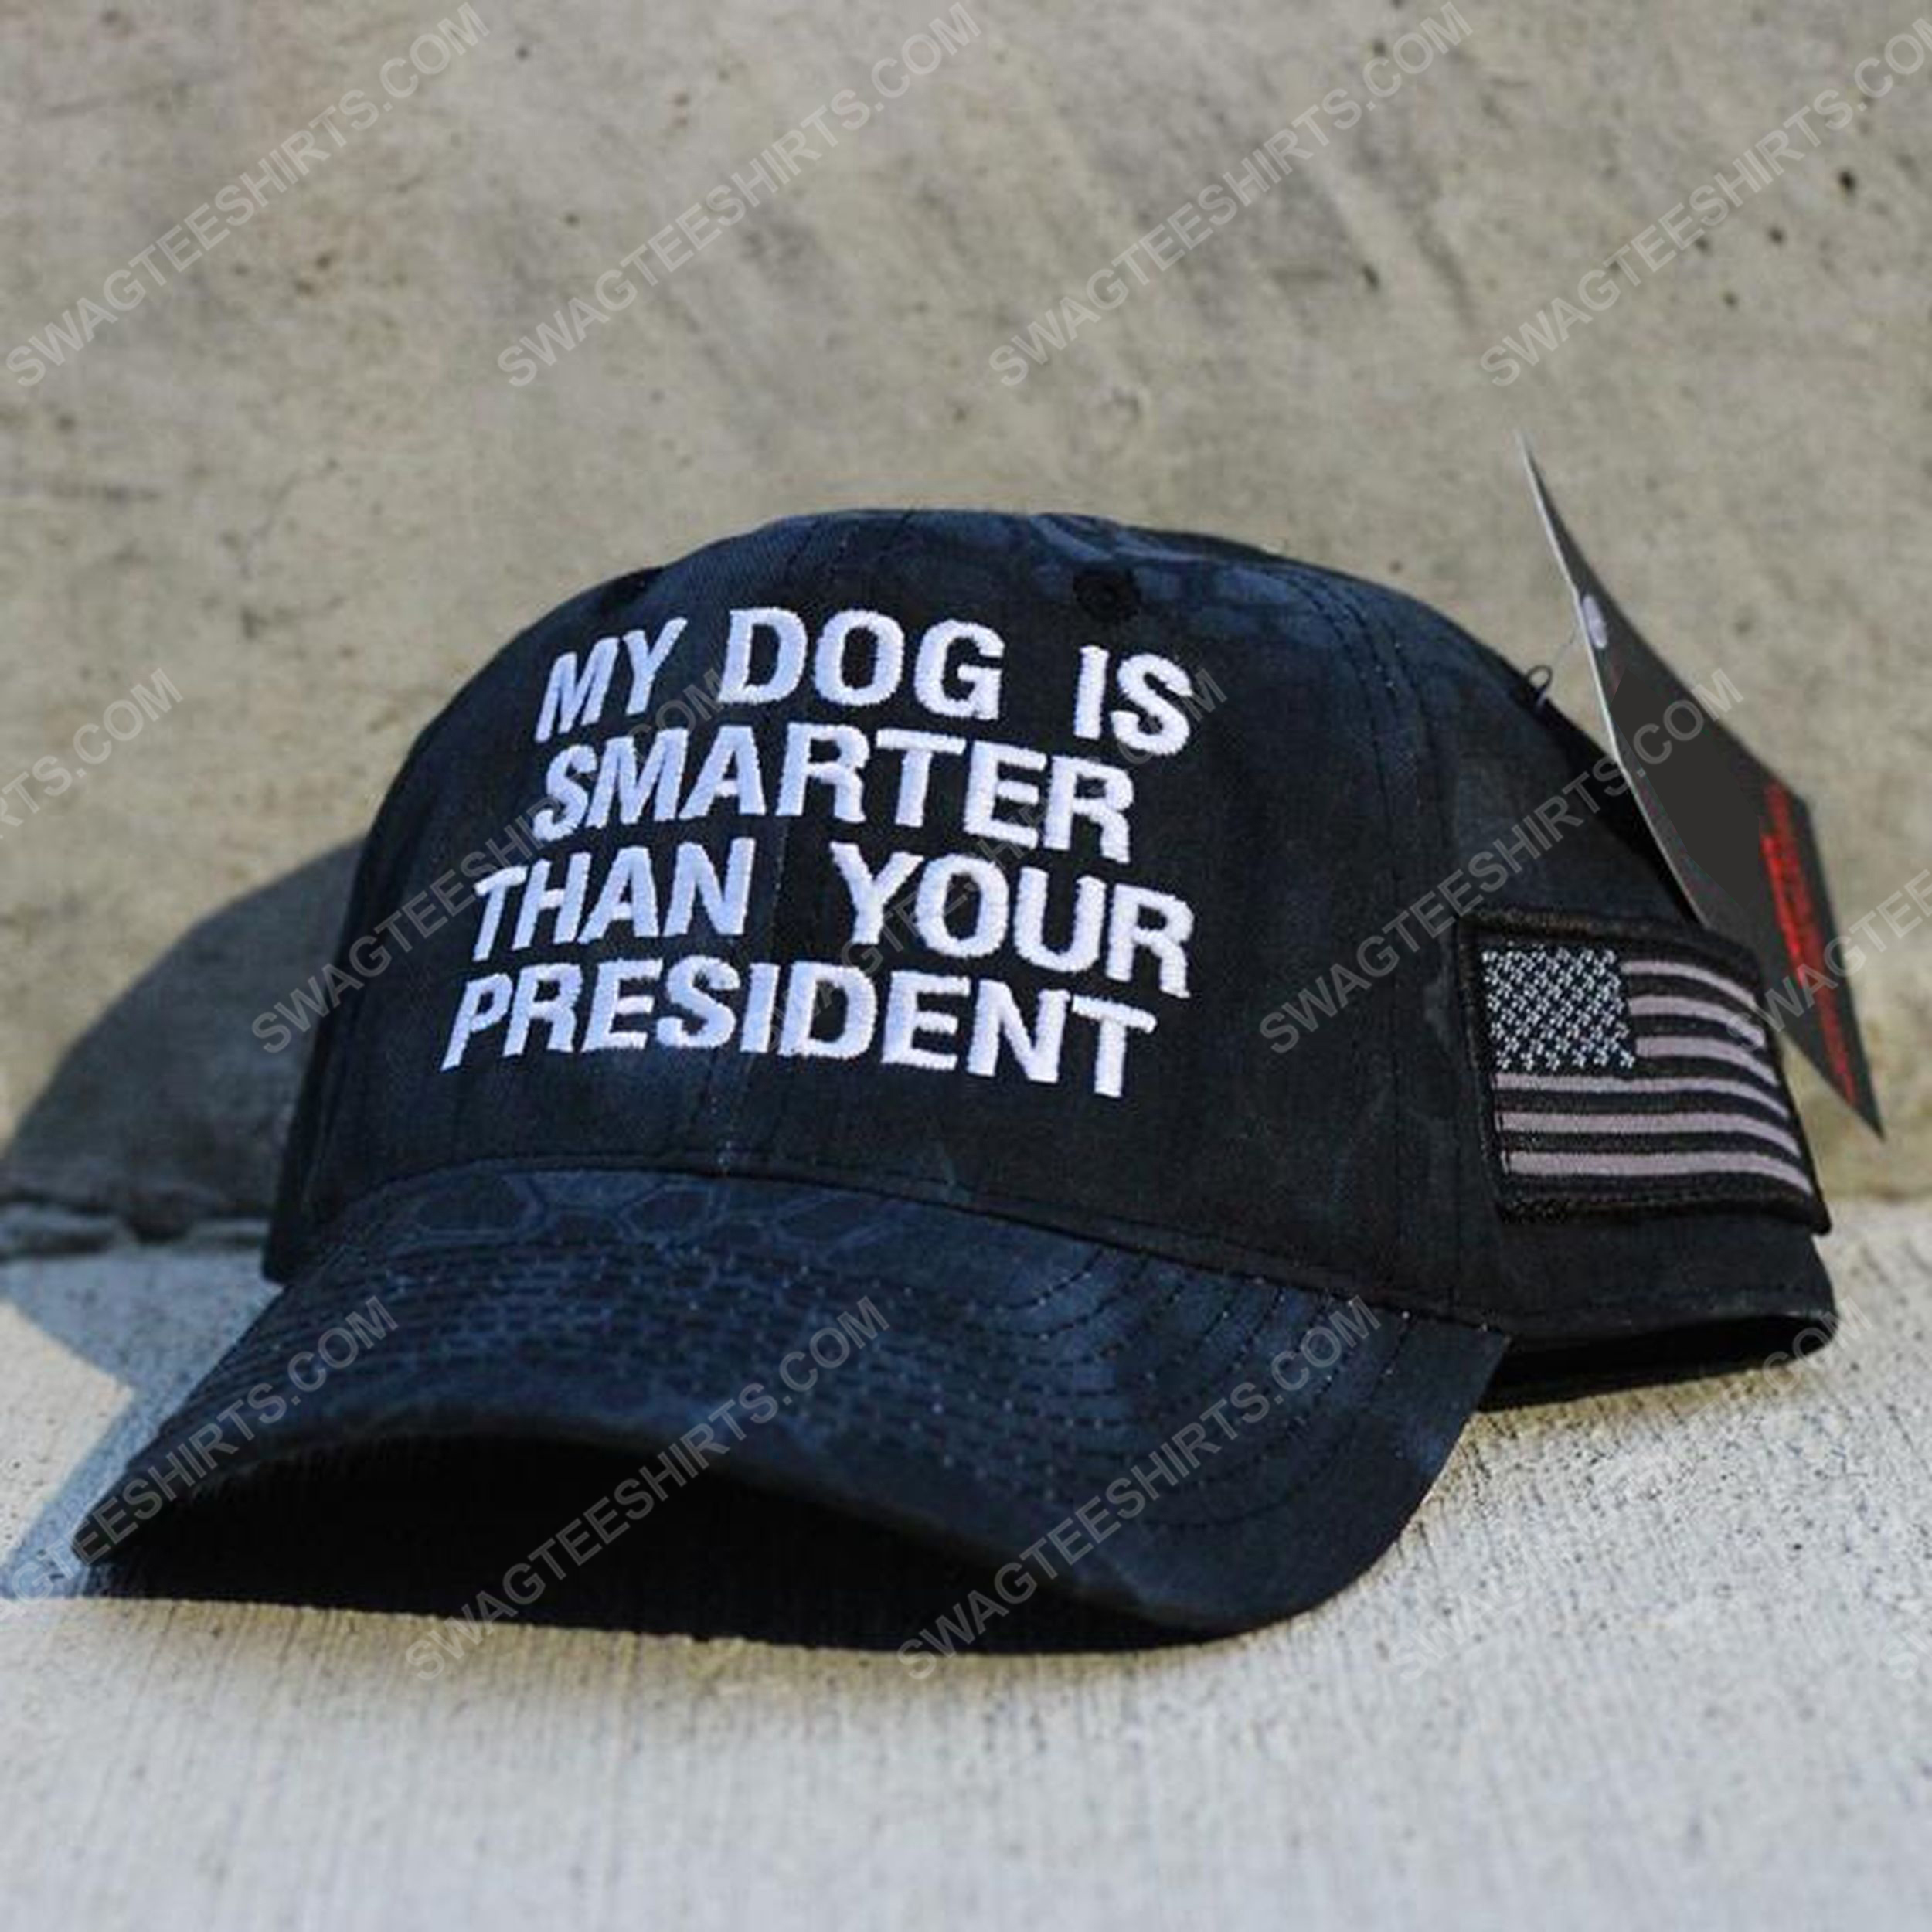 My dog is smarter than your president american flag full print classic hat 1 - Copy (3)